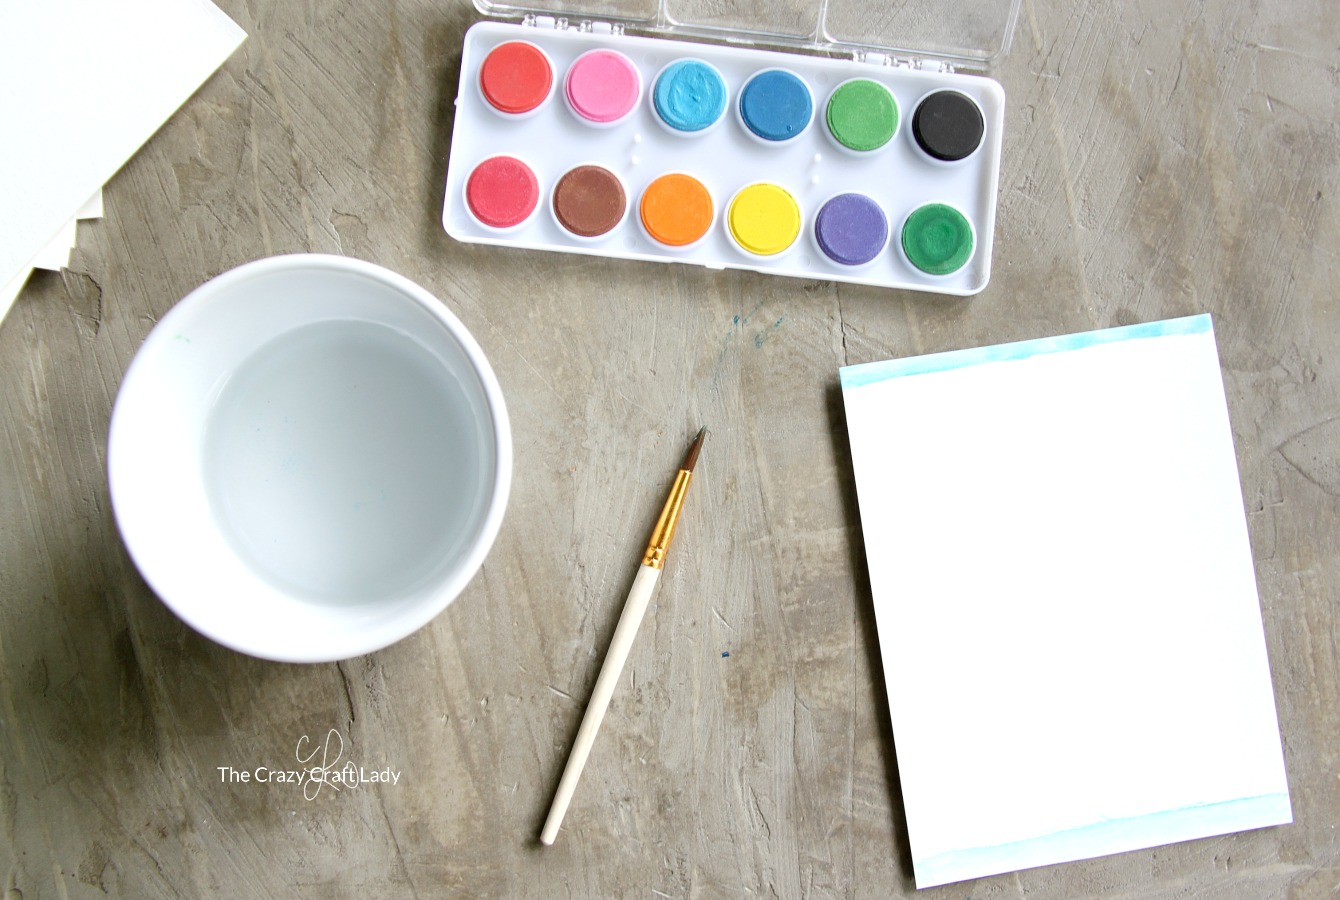 These watercolor personalized note cards are SO easy to make, and they make the perfect little handmade gift. Paint simple note cards with watercolor for a sweet custom homemade gift.